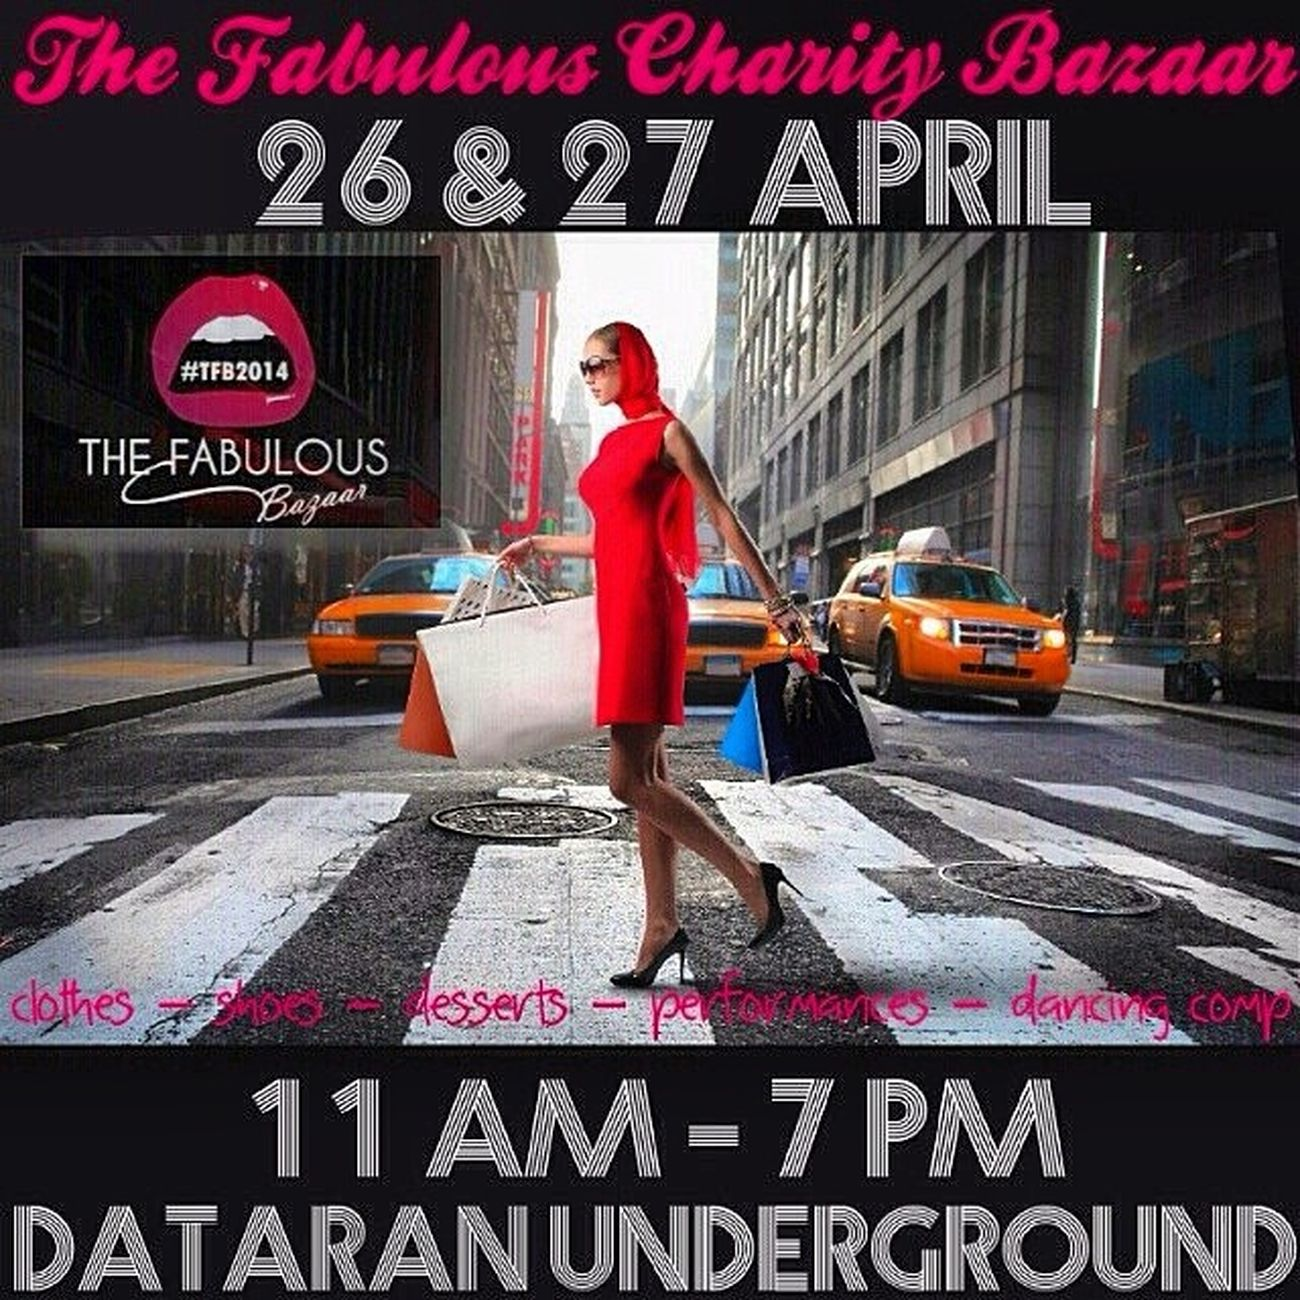 The Fabulous Charity Bazaar @thefabulousbazaar Tfb2014 Date : 26 & 27 April Venue : Dataran underground, Dataran Merdeka, Kuala Lumpur Time : 11 am - 7 pm Please please spread the news to show your support to my charity event. I appreciate your help and kind support! Thank you in advance lovelies!